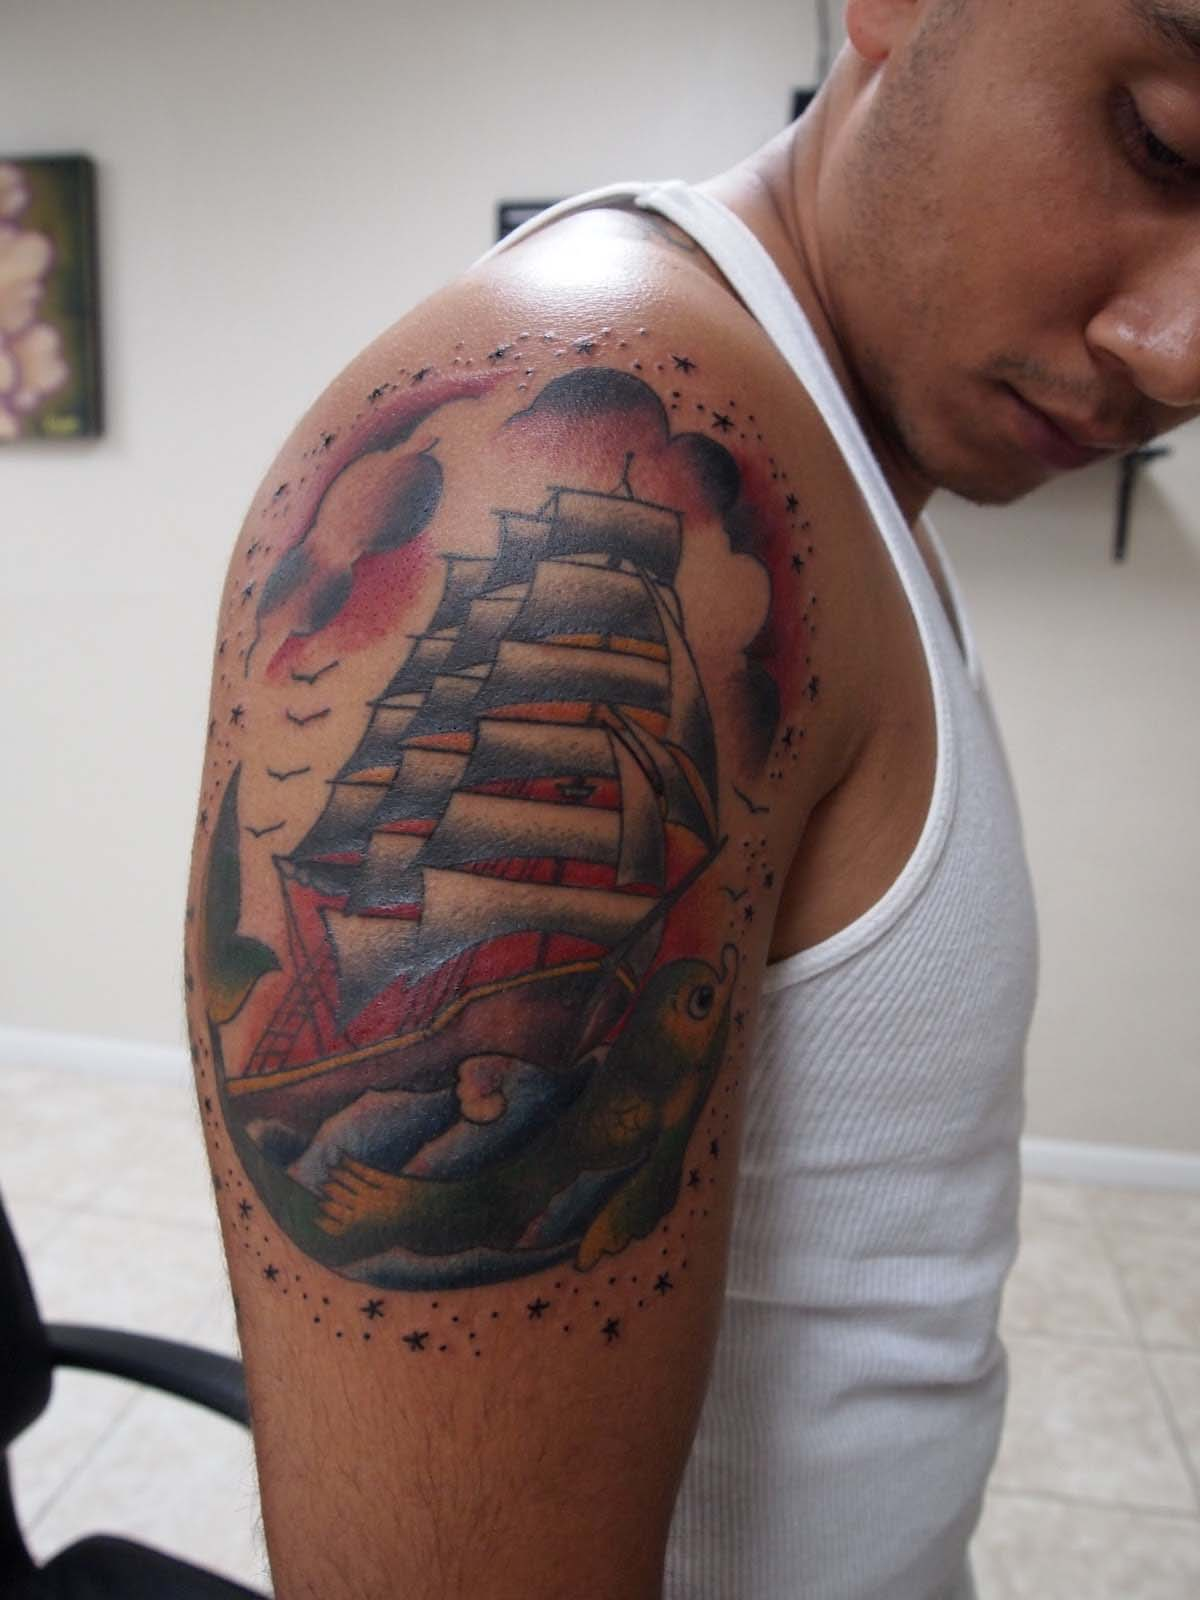 3D Tattoo On Biceps And Triceps Tattoos Photo Gallery Ideas And Designs